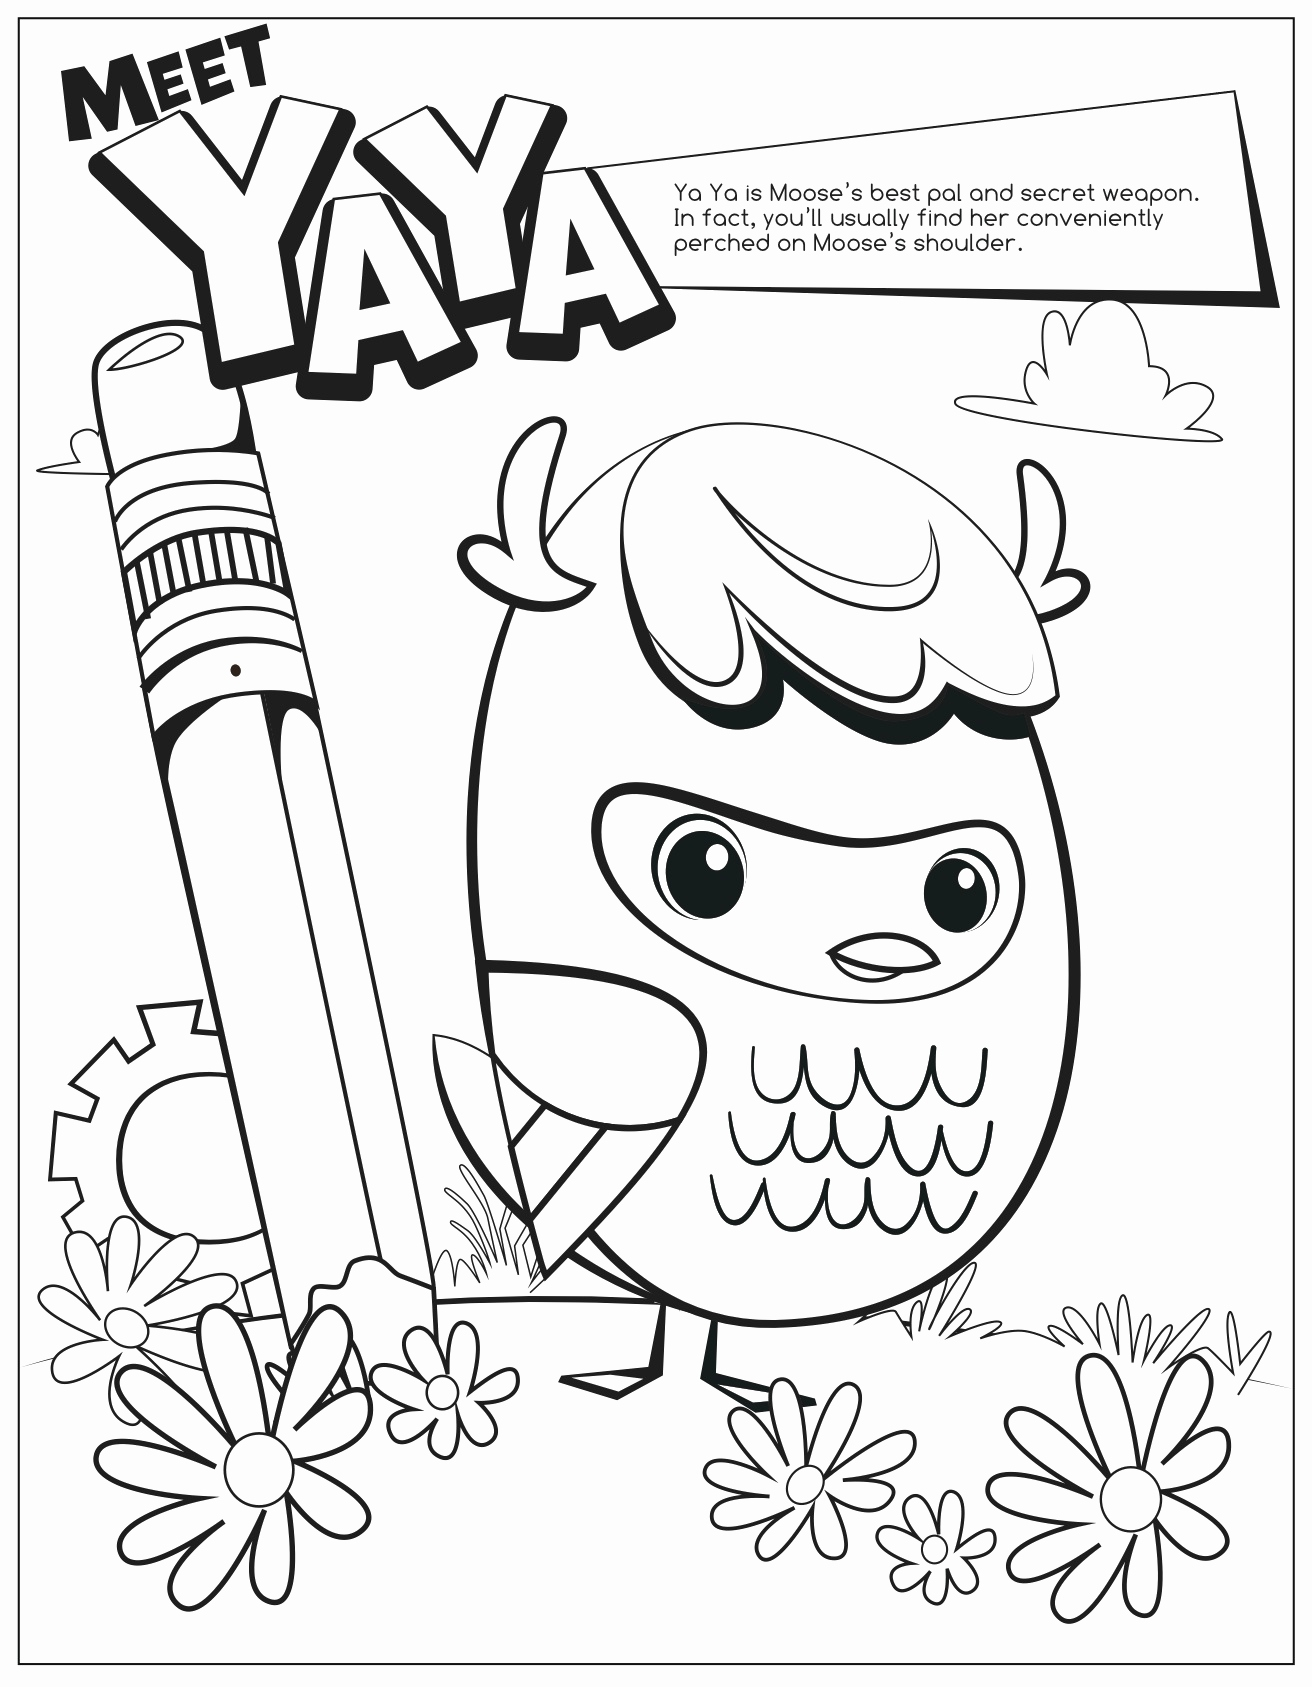 coloring pages for 5th graders 5th grade coloring pages coloring home for 5th pages graders coloring